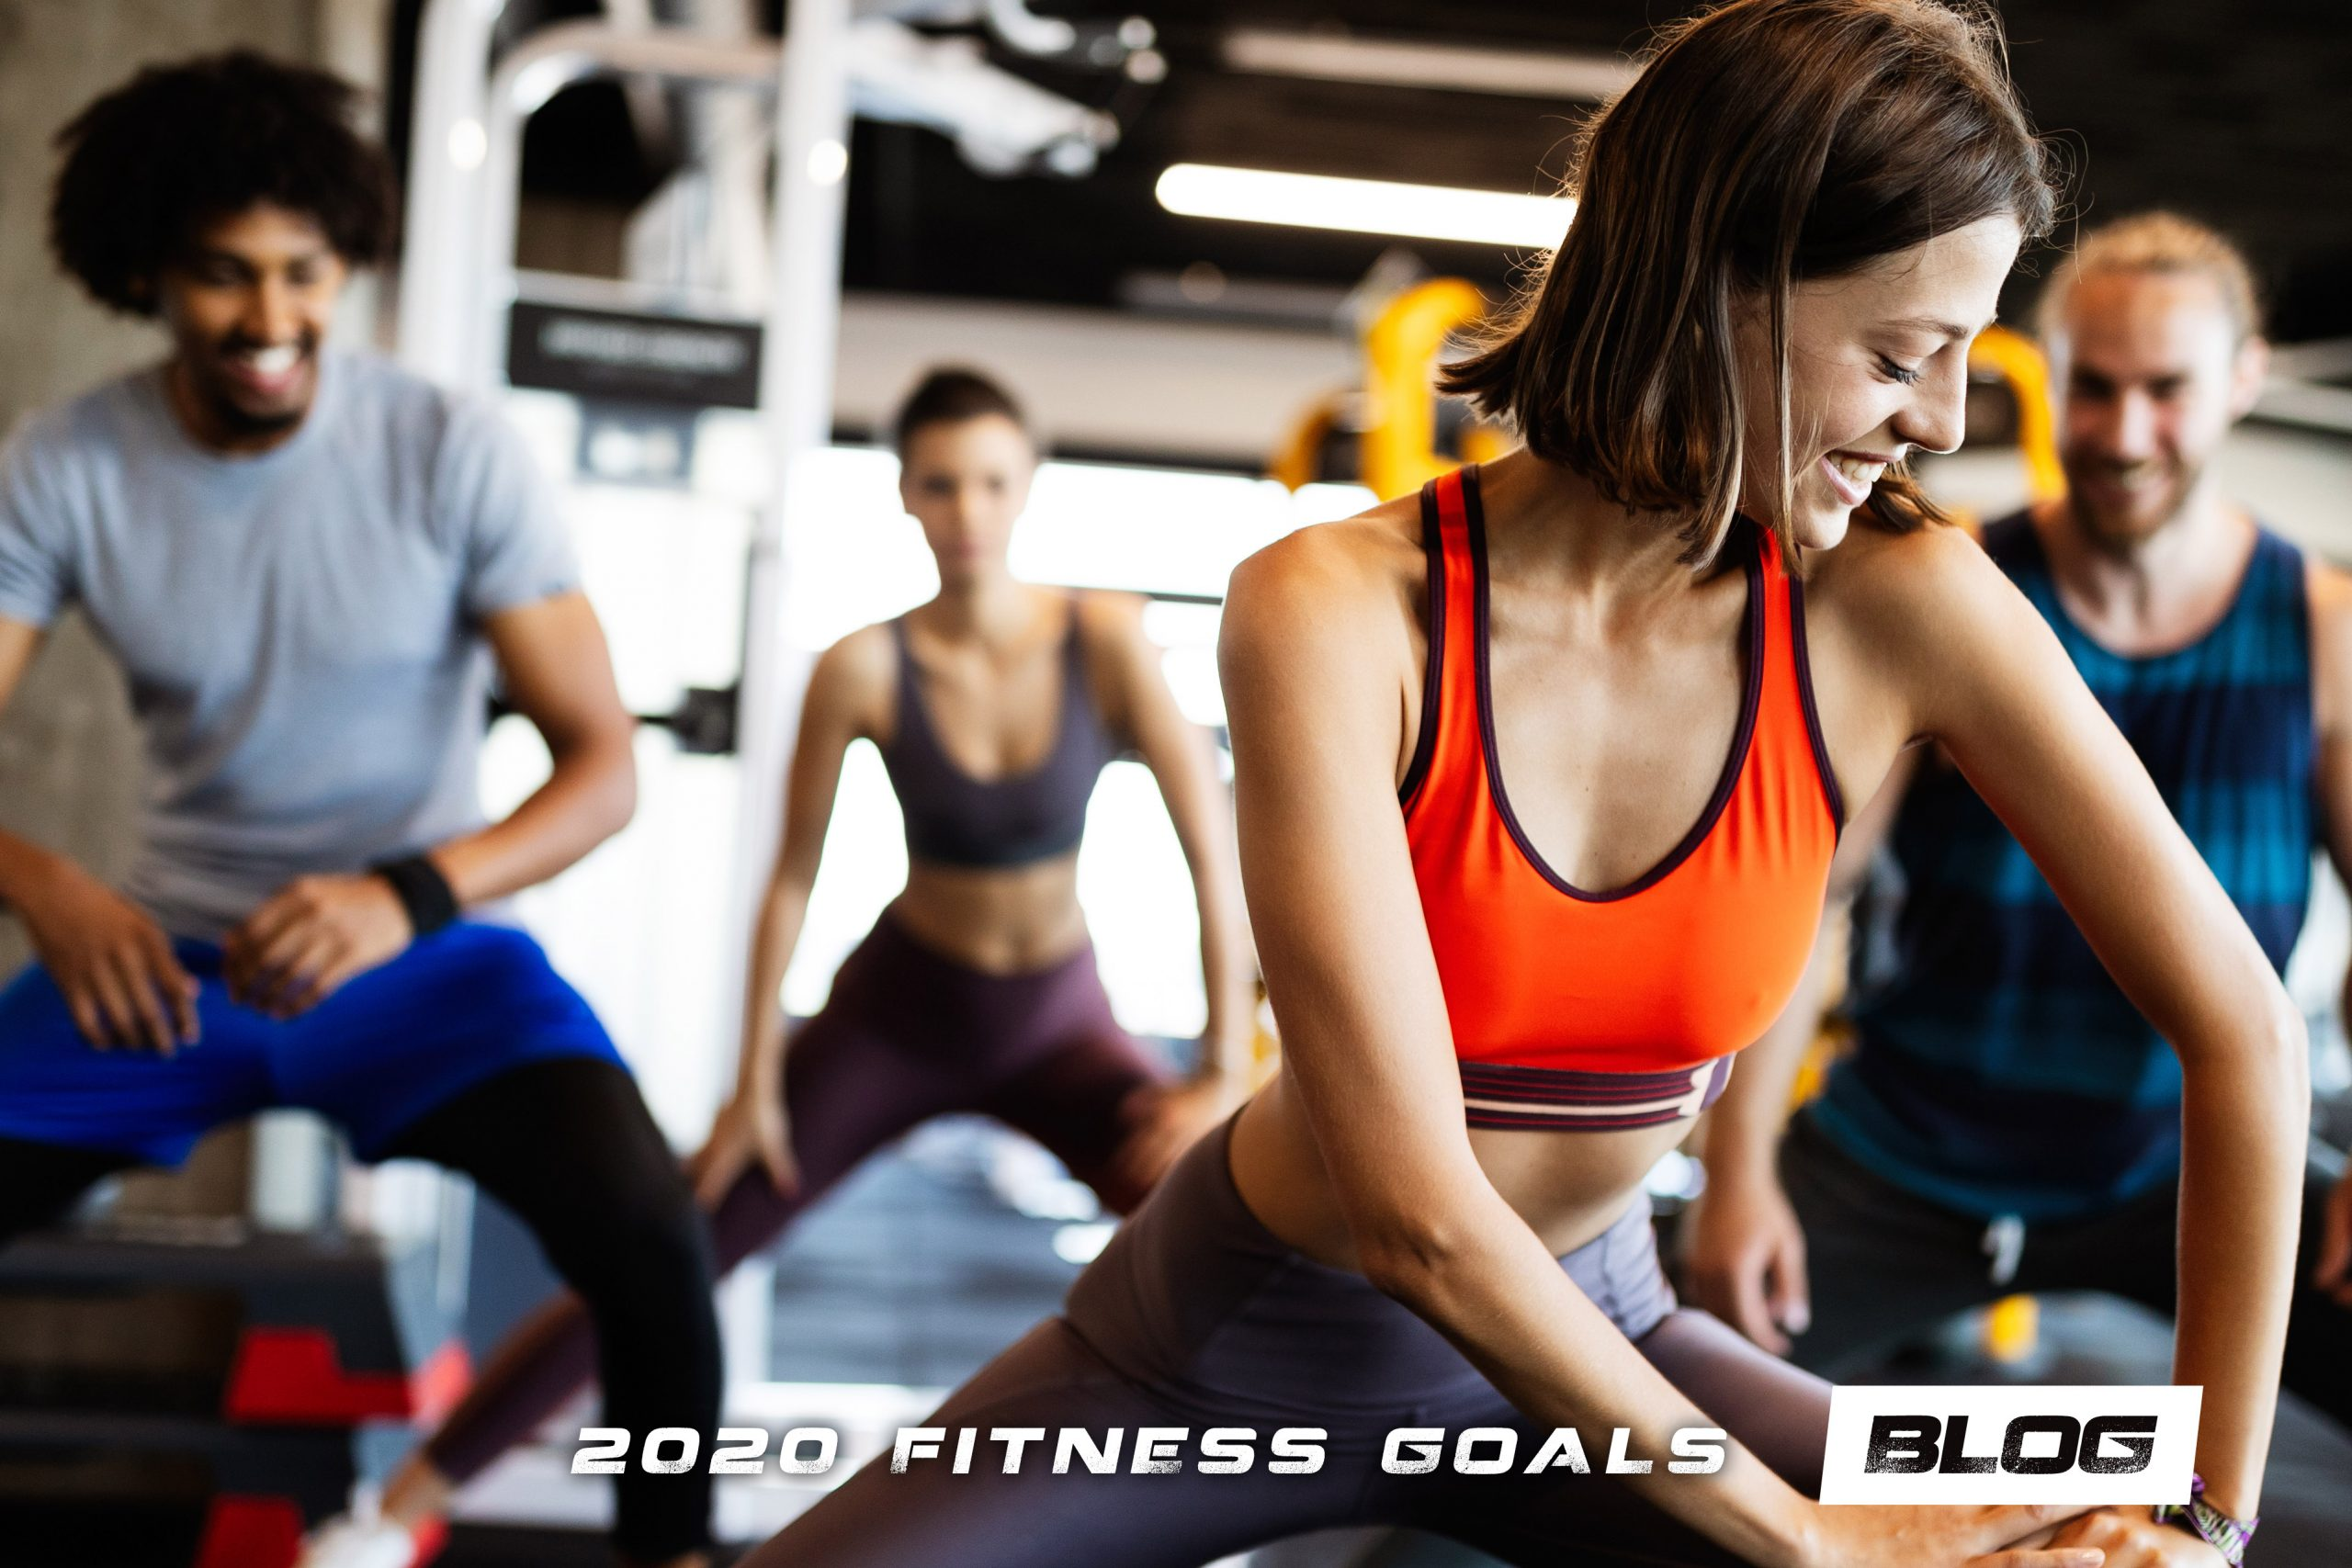 How To Win At Physical Fitness in 2020